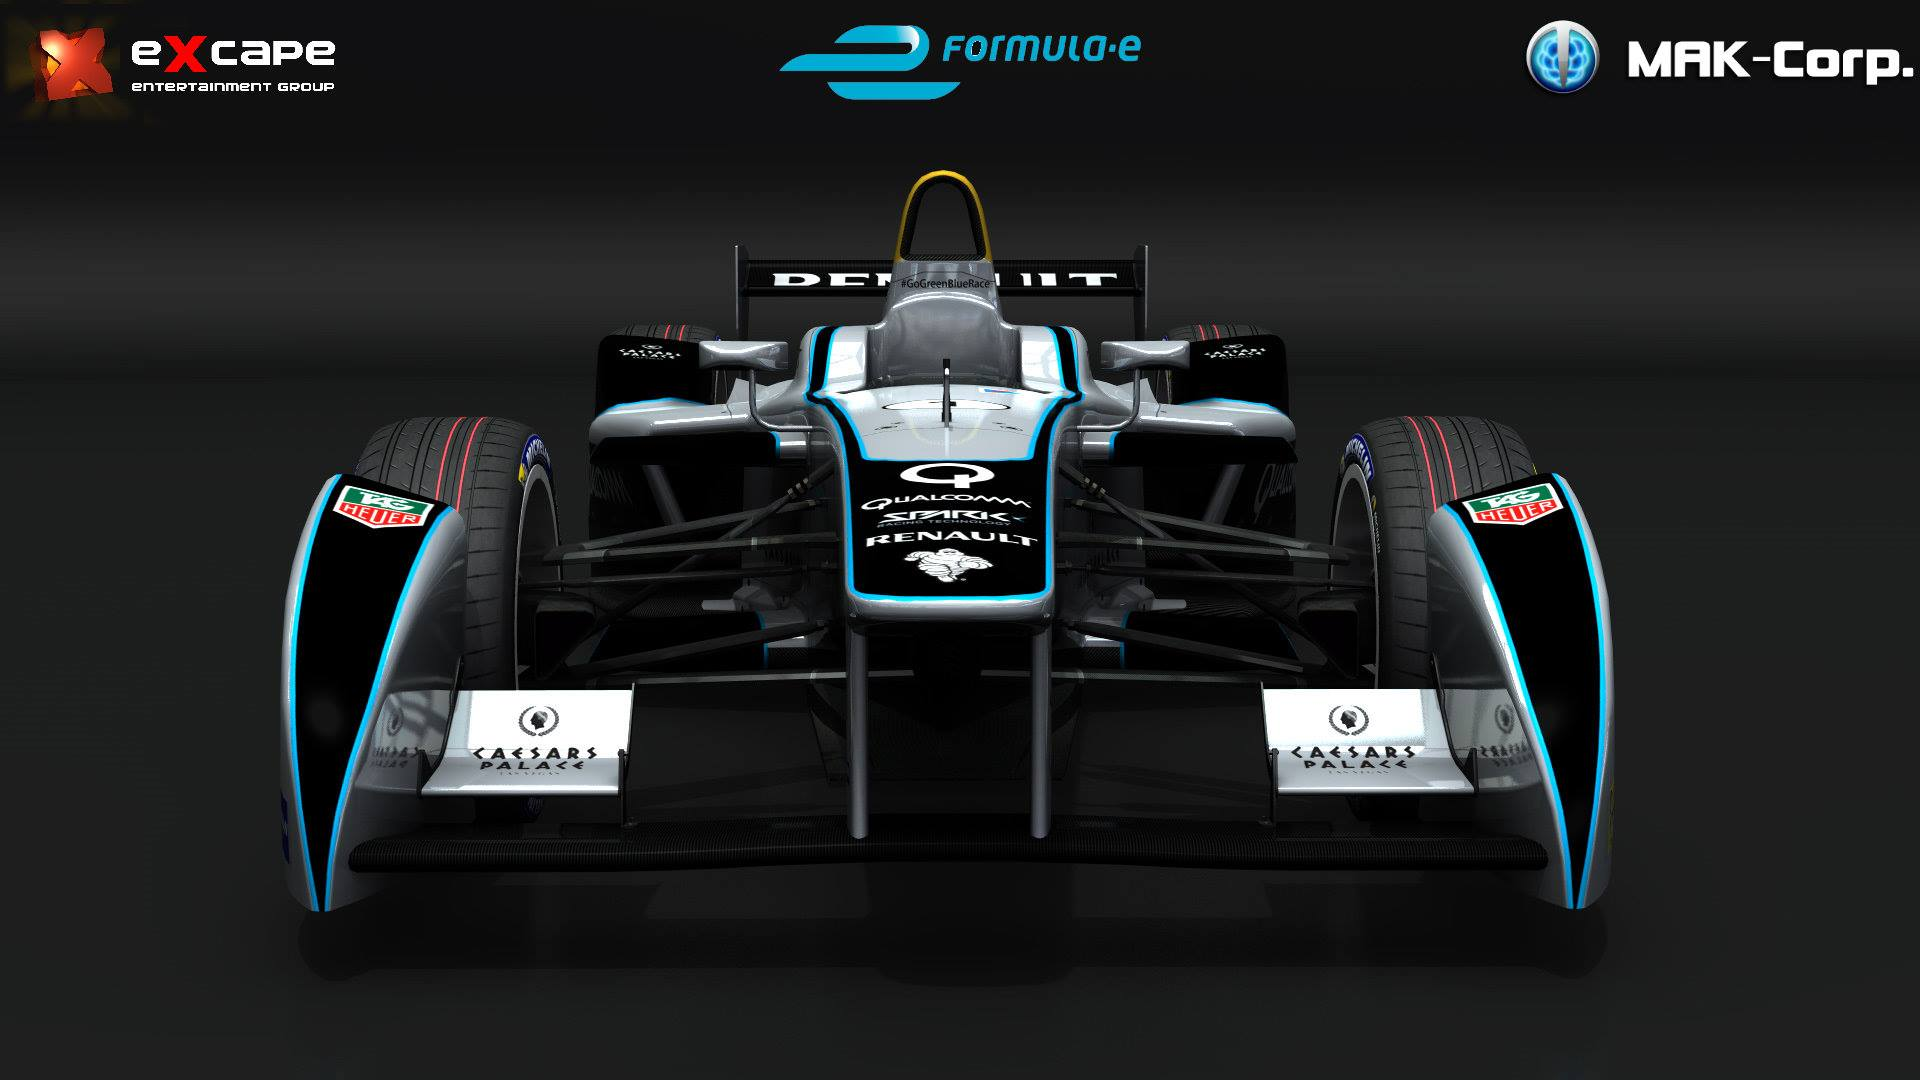 Mak Corp Formula E Car Unveiled Virtualr Net 100